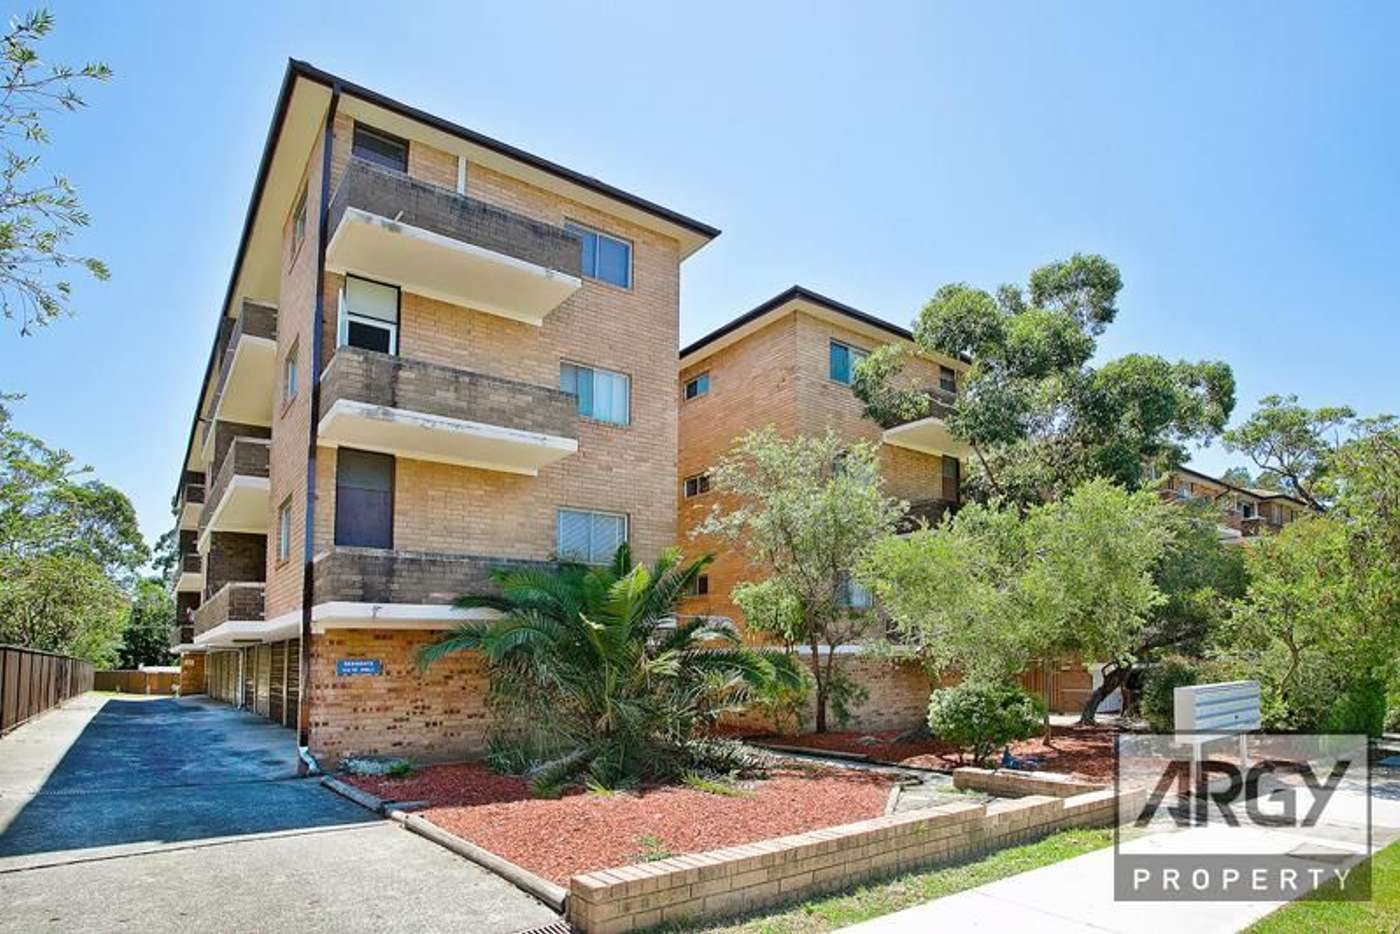 Main view of Homely unit listing, 27/14-16 French Street, Kogarah NSW 2217